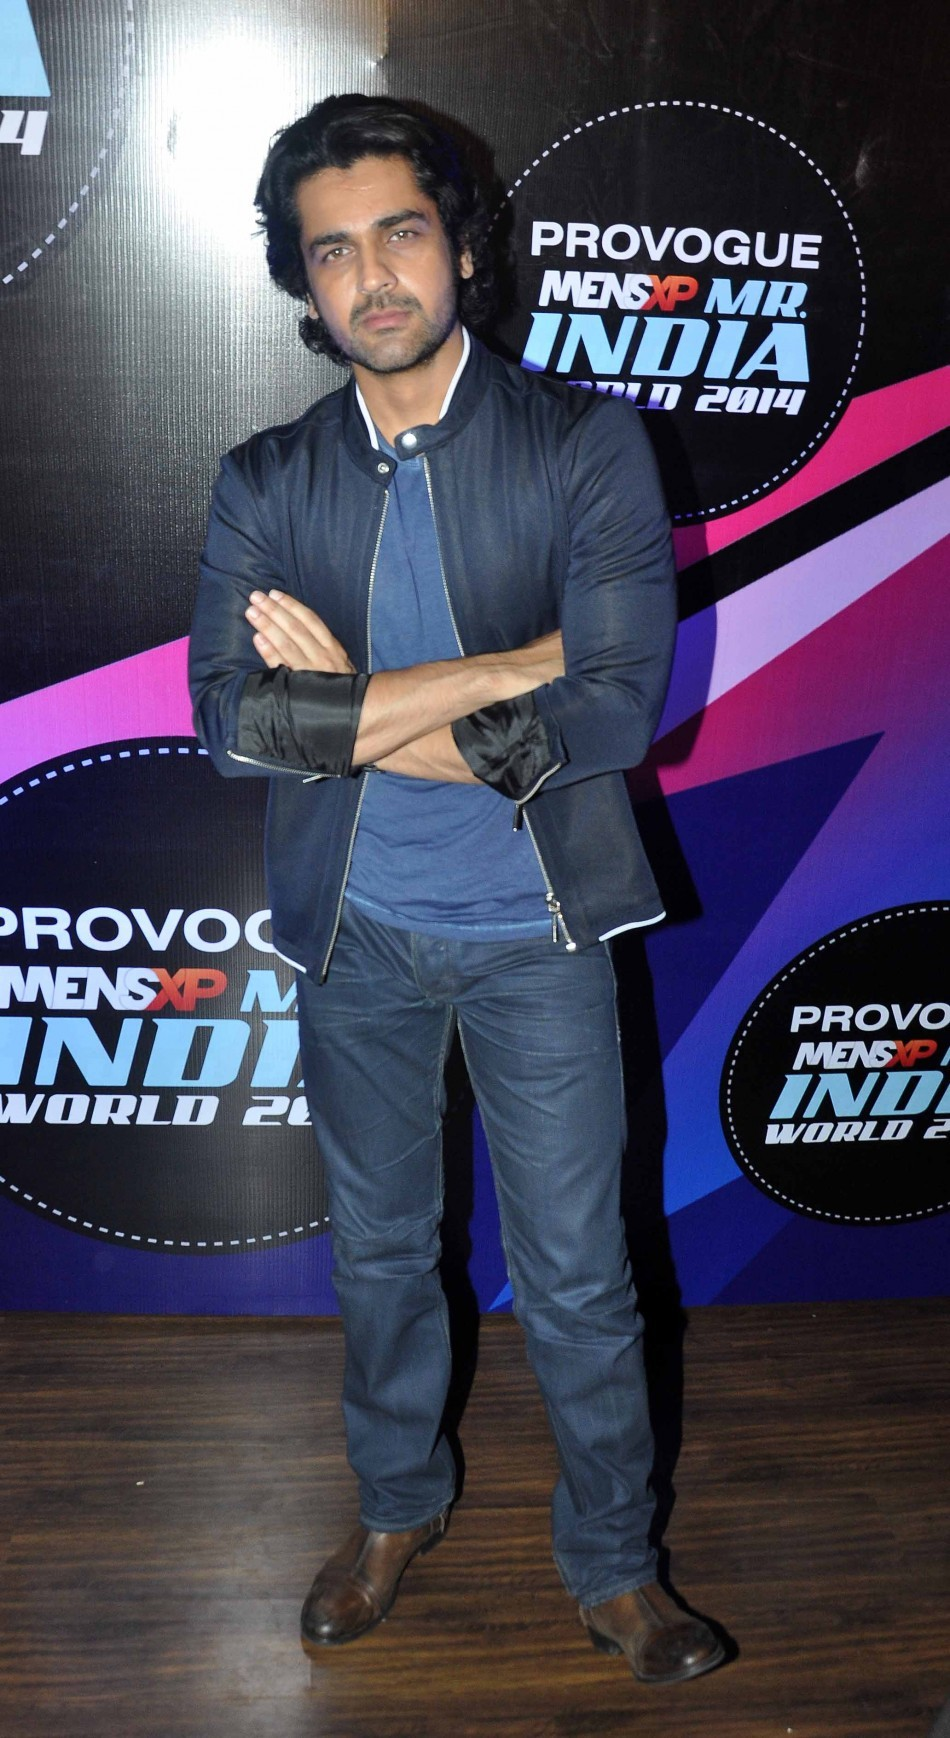 Arjan Bajwa judge the first edition of  Provogue MensXP Mr. India 2014 in Mumbai